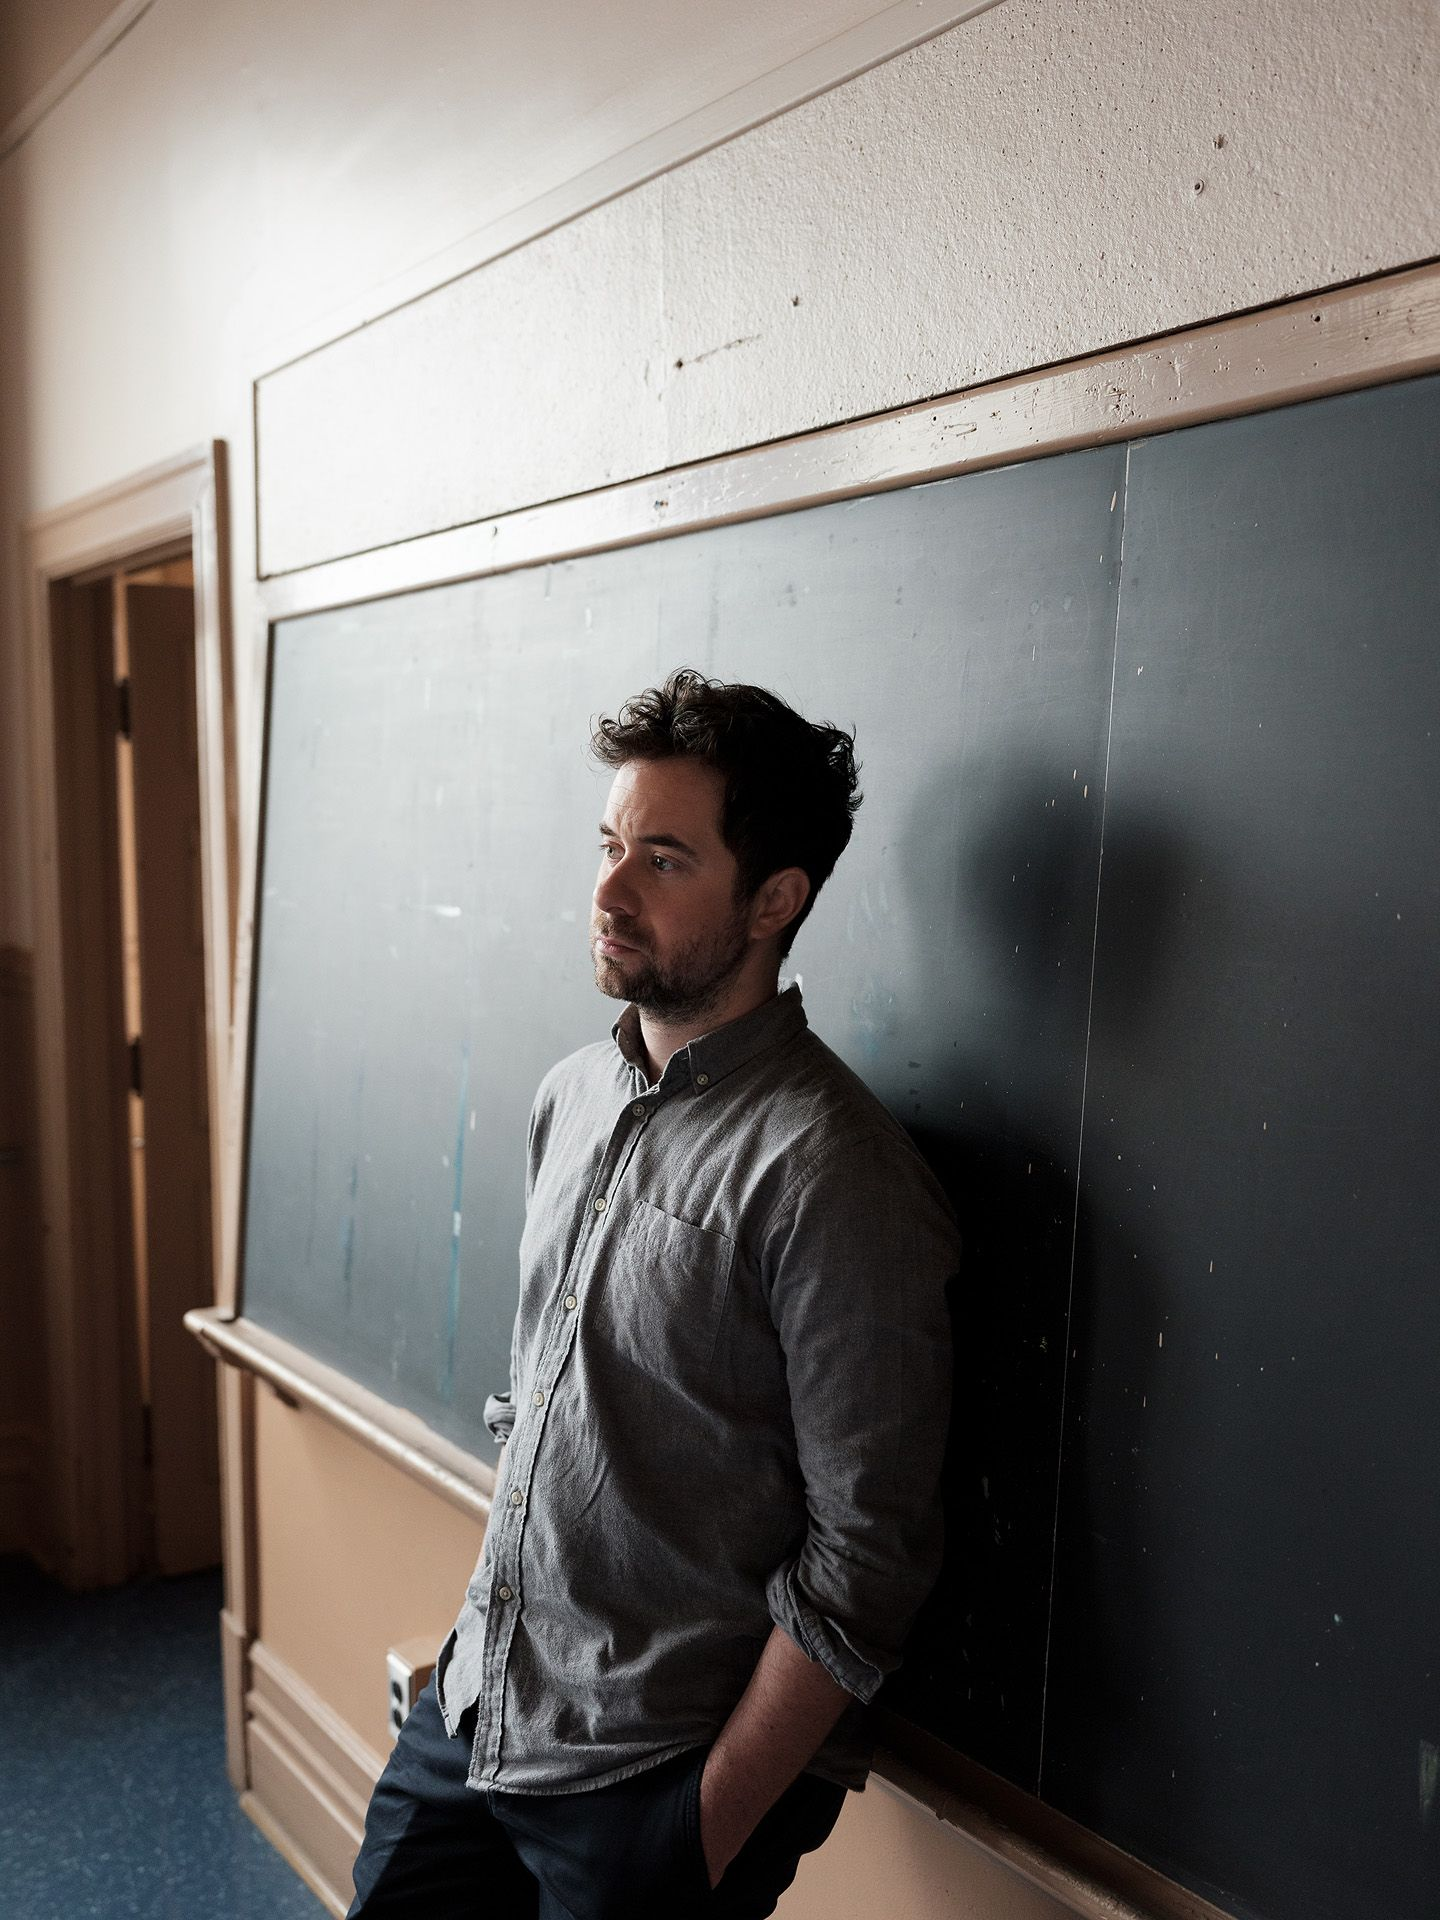 singer Jean-Michel Blais posing against black chalkboard with his hands in his pockets wearing grey shirt black pants photographed by Guillaume Simoneau for Voir's magazine cover